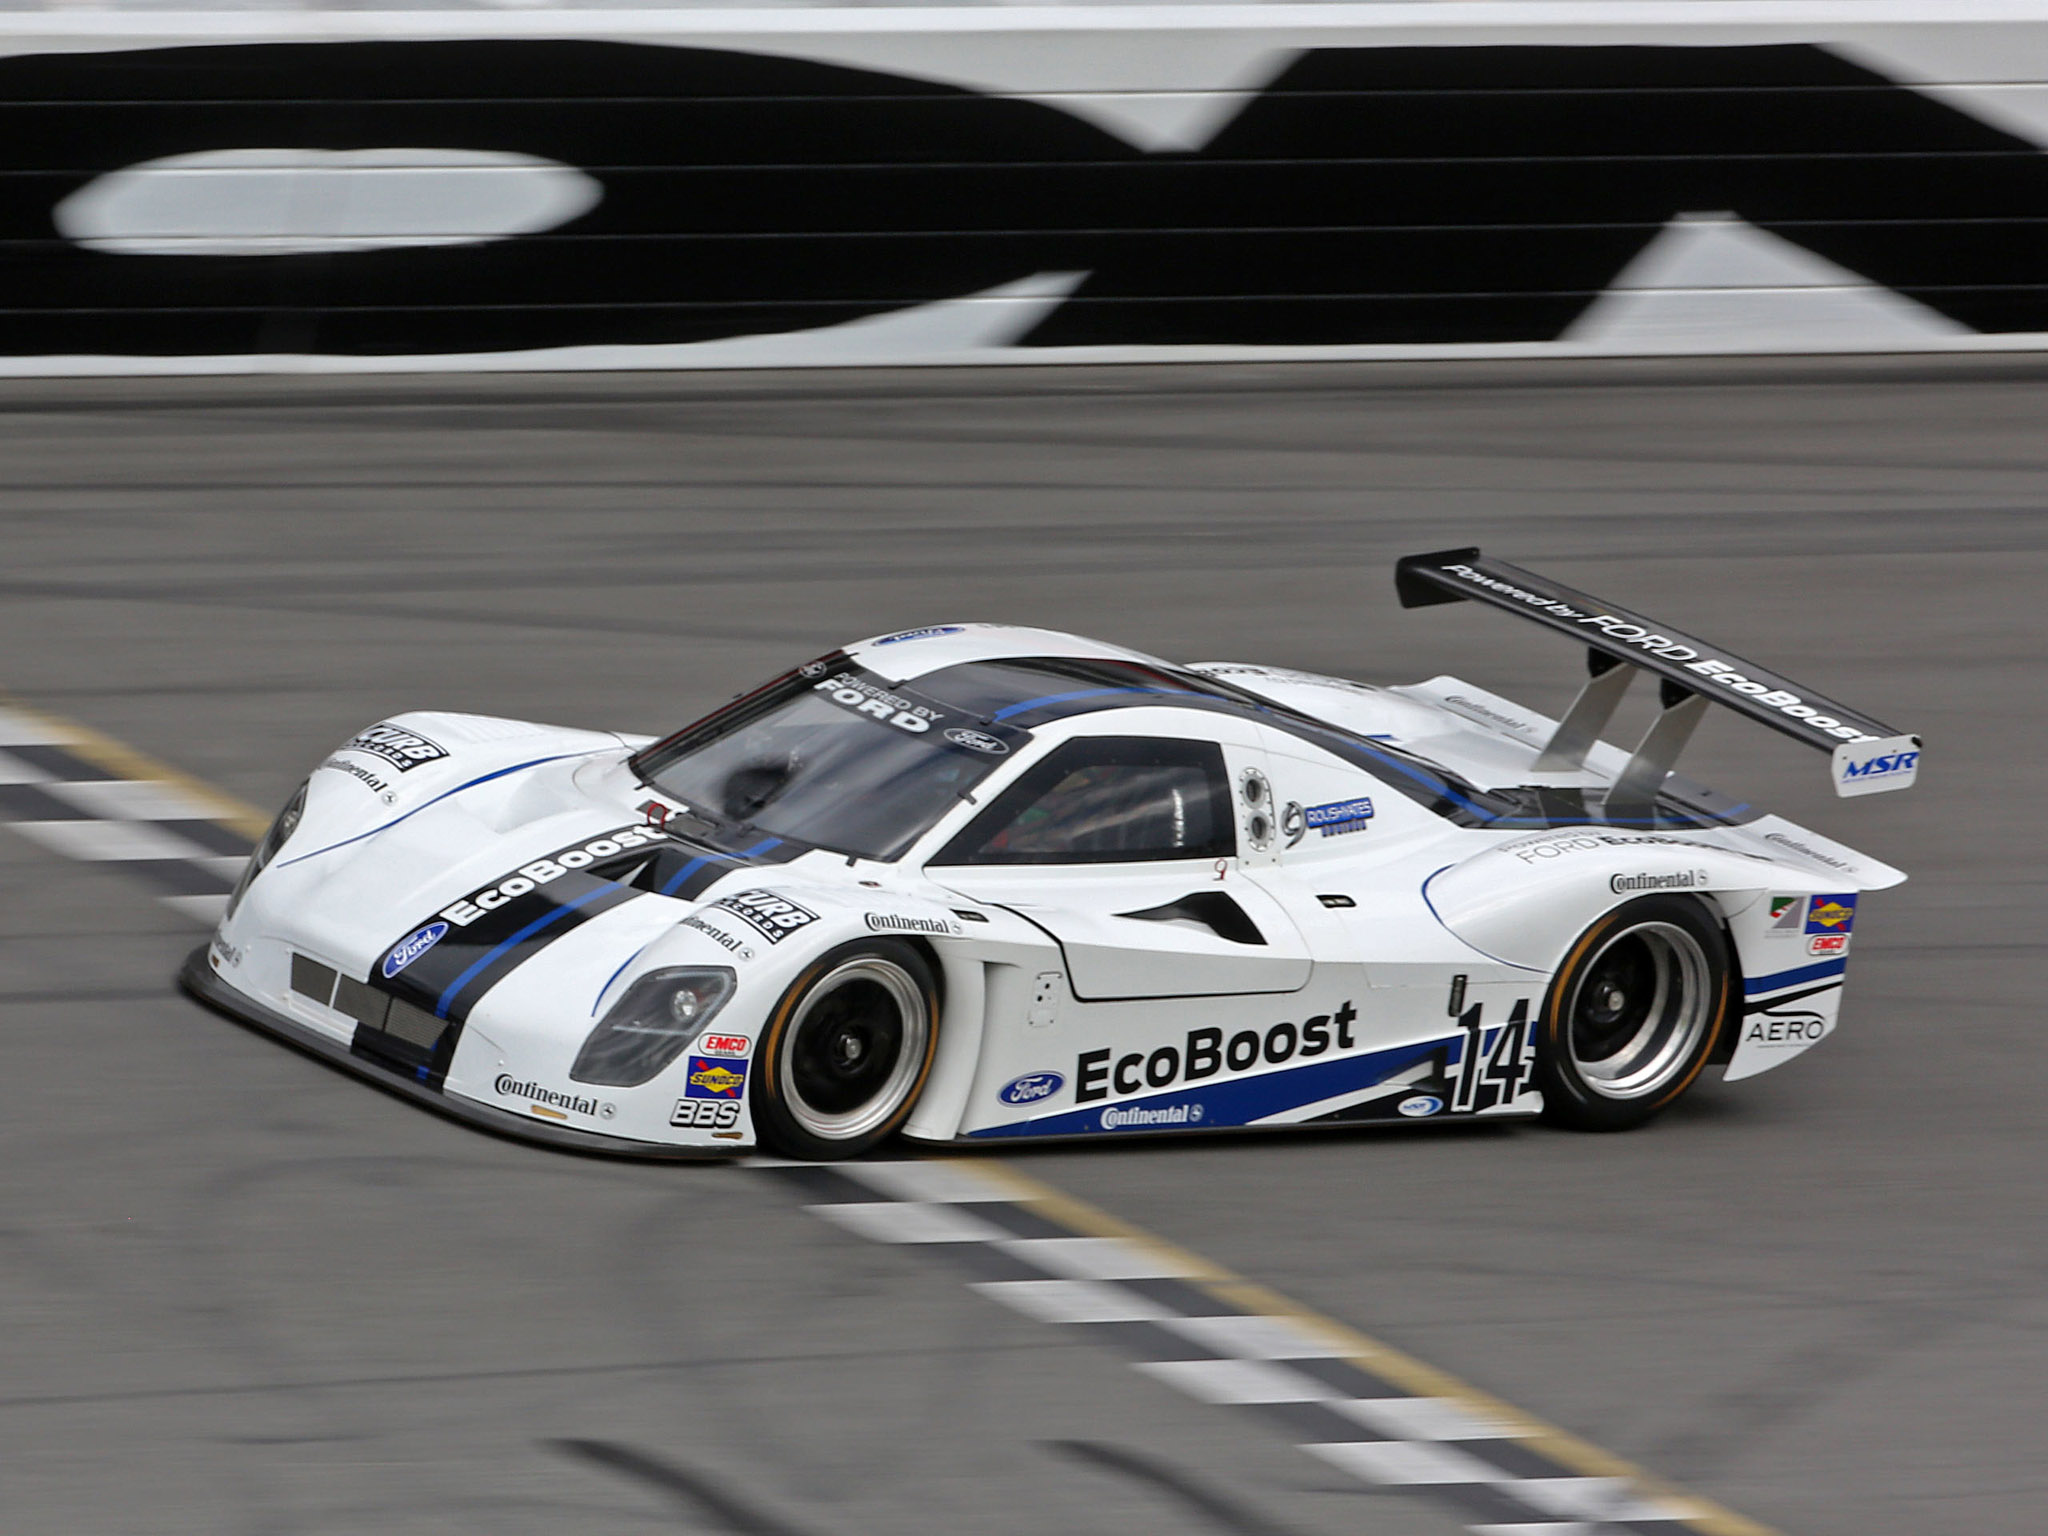 Ford Ecoboost Lmp Race Car Le Mans Racing G Wallpaper